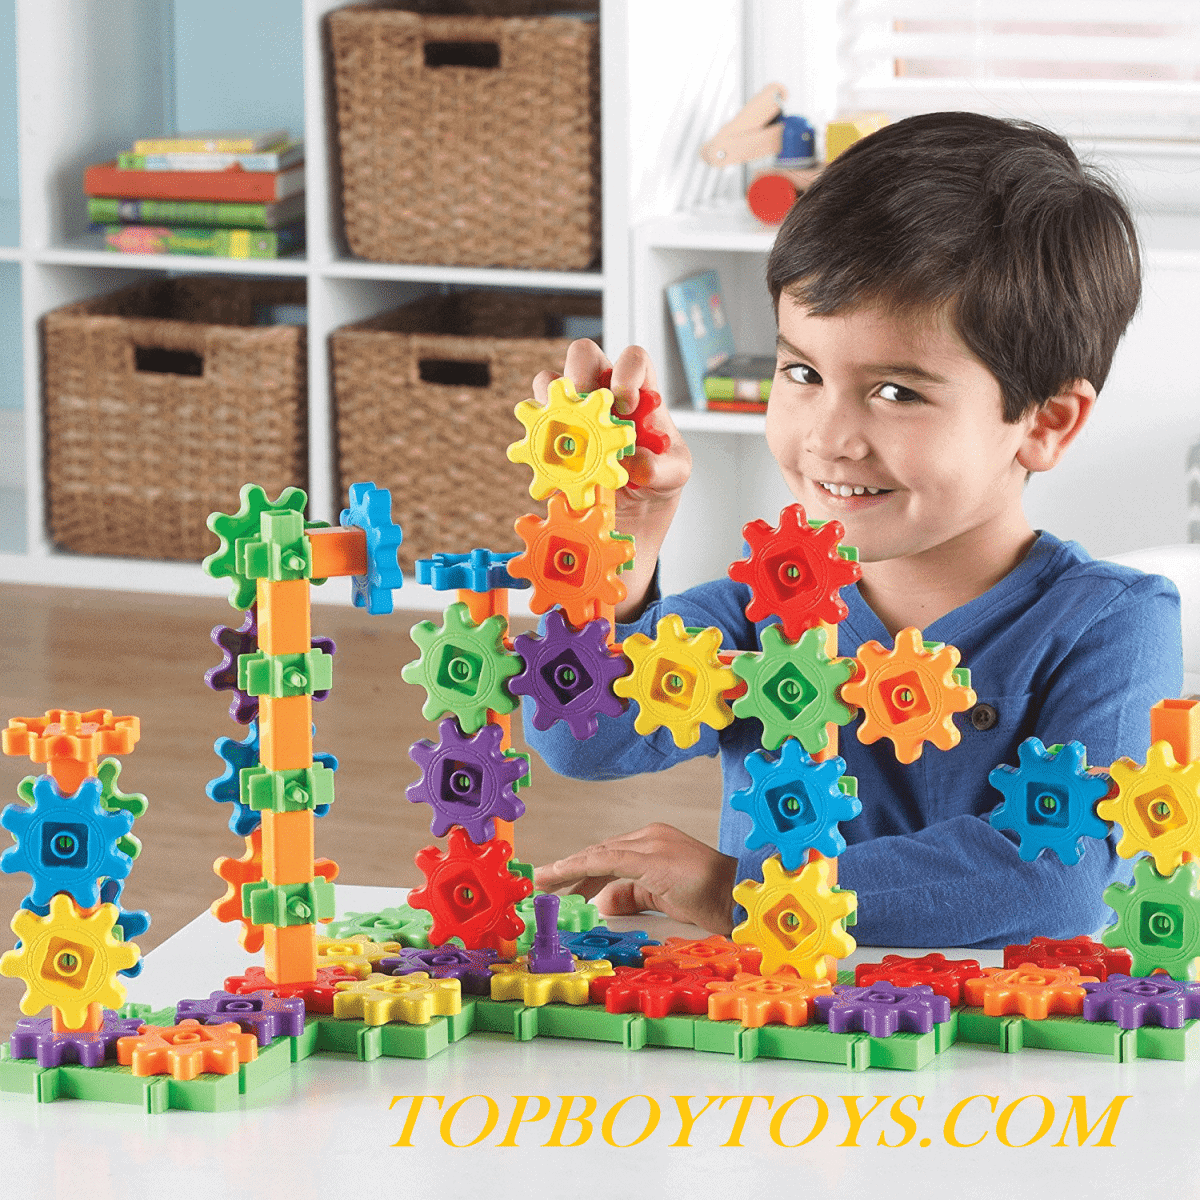 8b508926b58 Best Toys and Gift Ideas for 4-Year-Old Boys to Buy 2019 - LittleOneMag